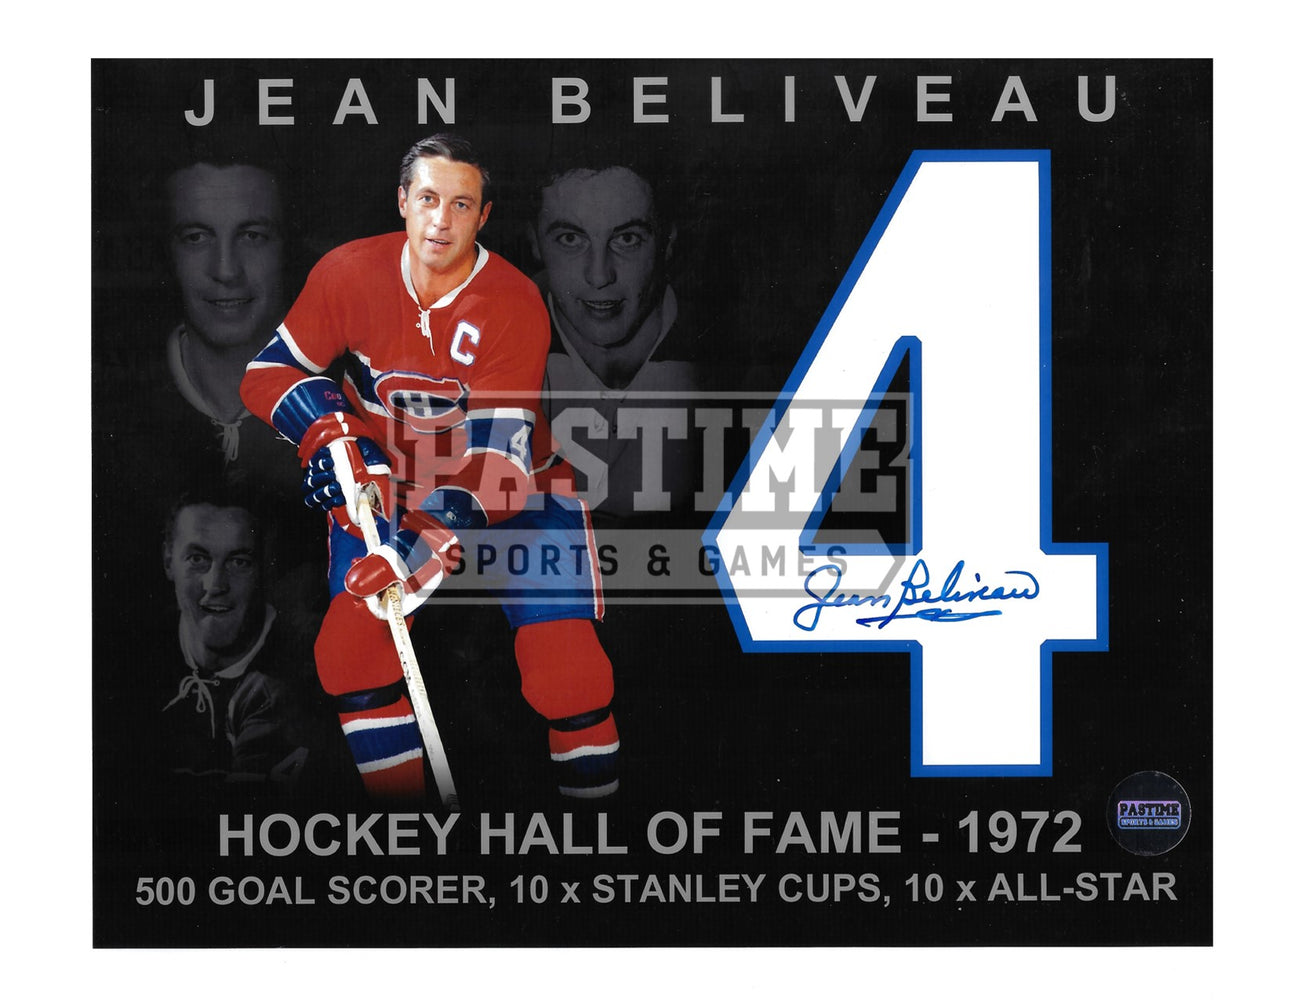 Jean Beliveau Autographed 8X10 Montreal Canadians Home Jersey (Hockey Hall Of Fame) - Pastime Sports & Games